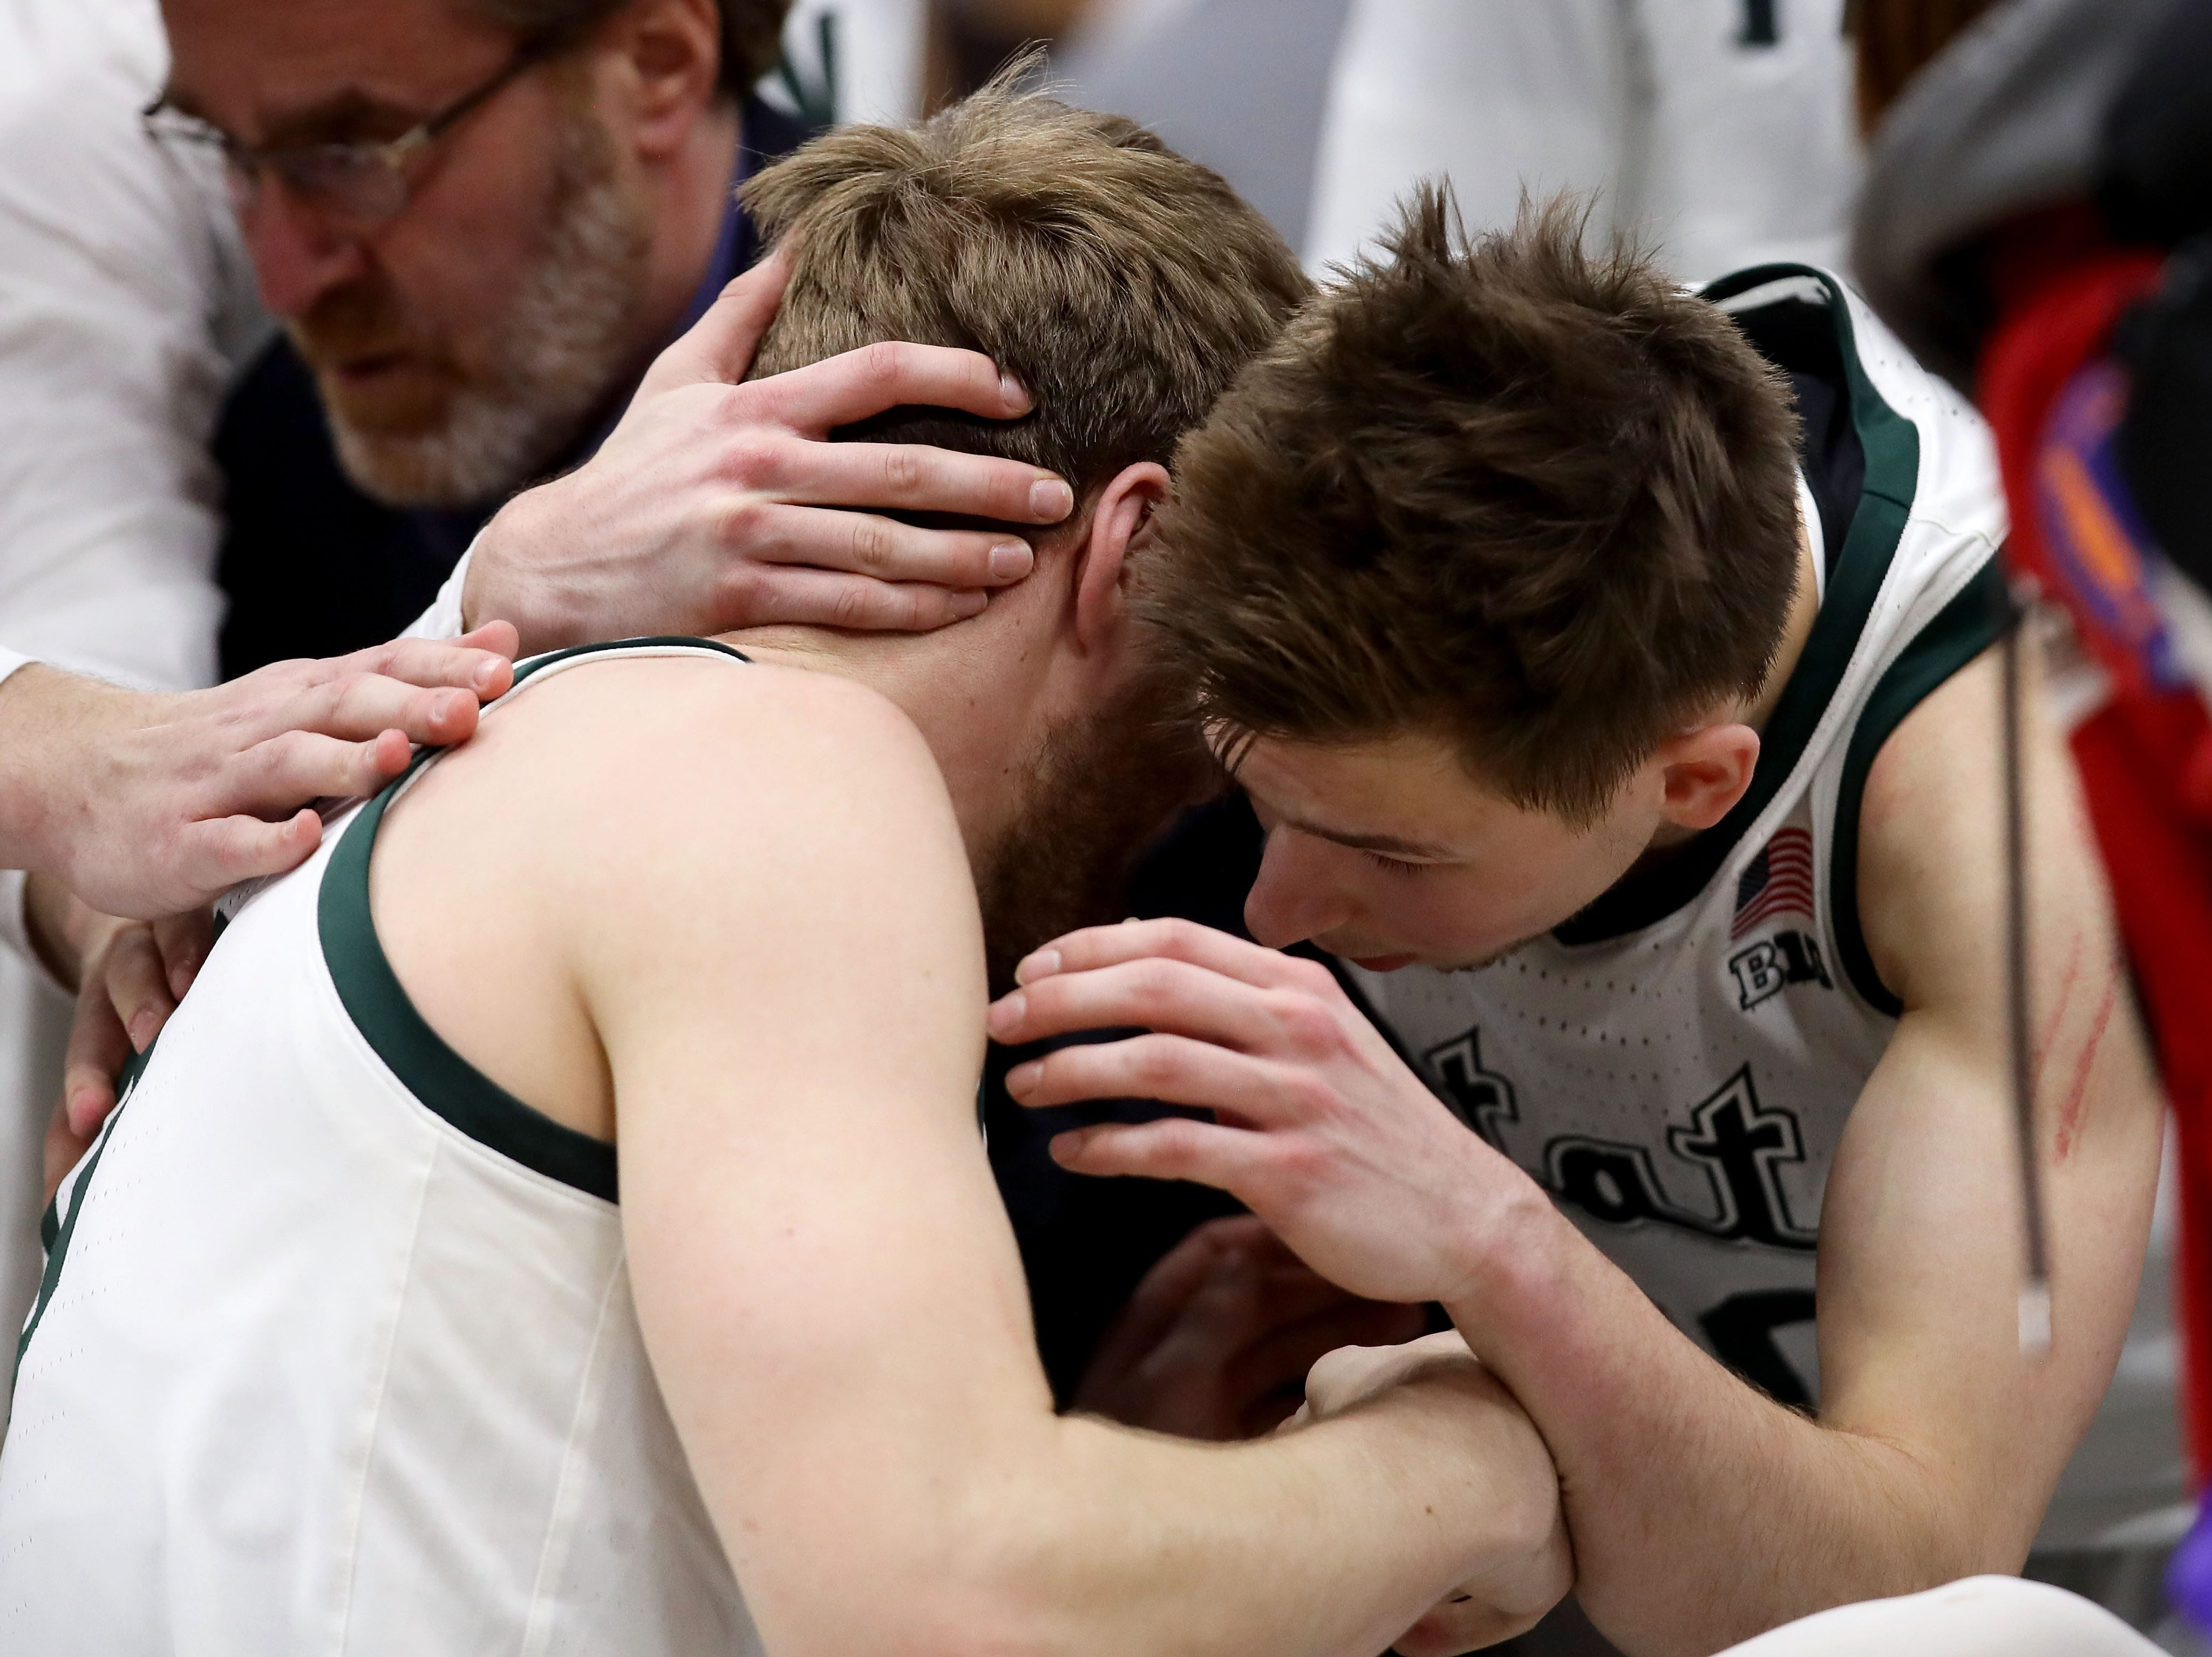 Kyle Ahrens #0 of the Michigan State Spartans #0 and Matt McQuaid #20 meet after Ahrens was injured in the first half against the Michigan Wolverines during the championship game of the Big Ten Basketball Tournament at the United Center on March 17, 2019 in Chicago, Illinois.